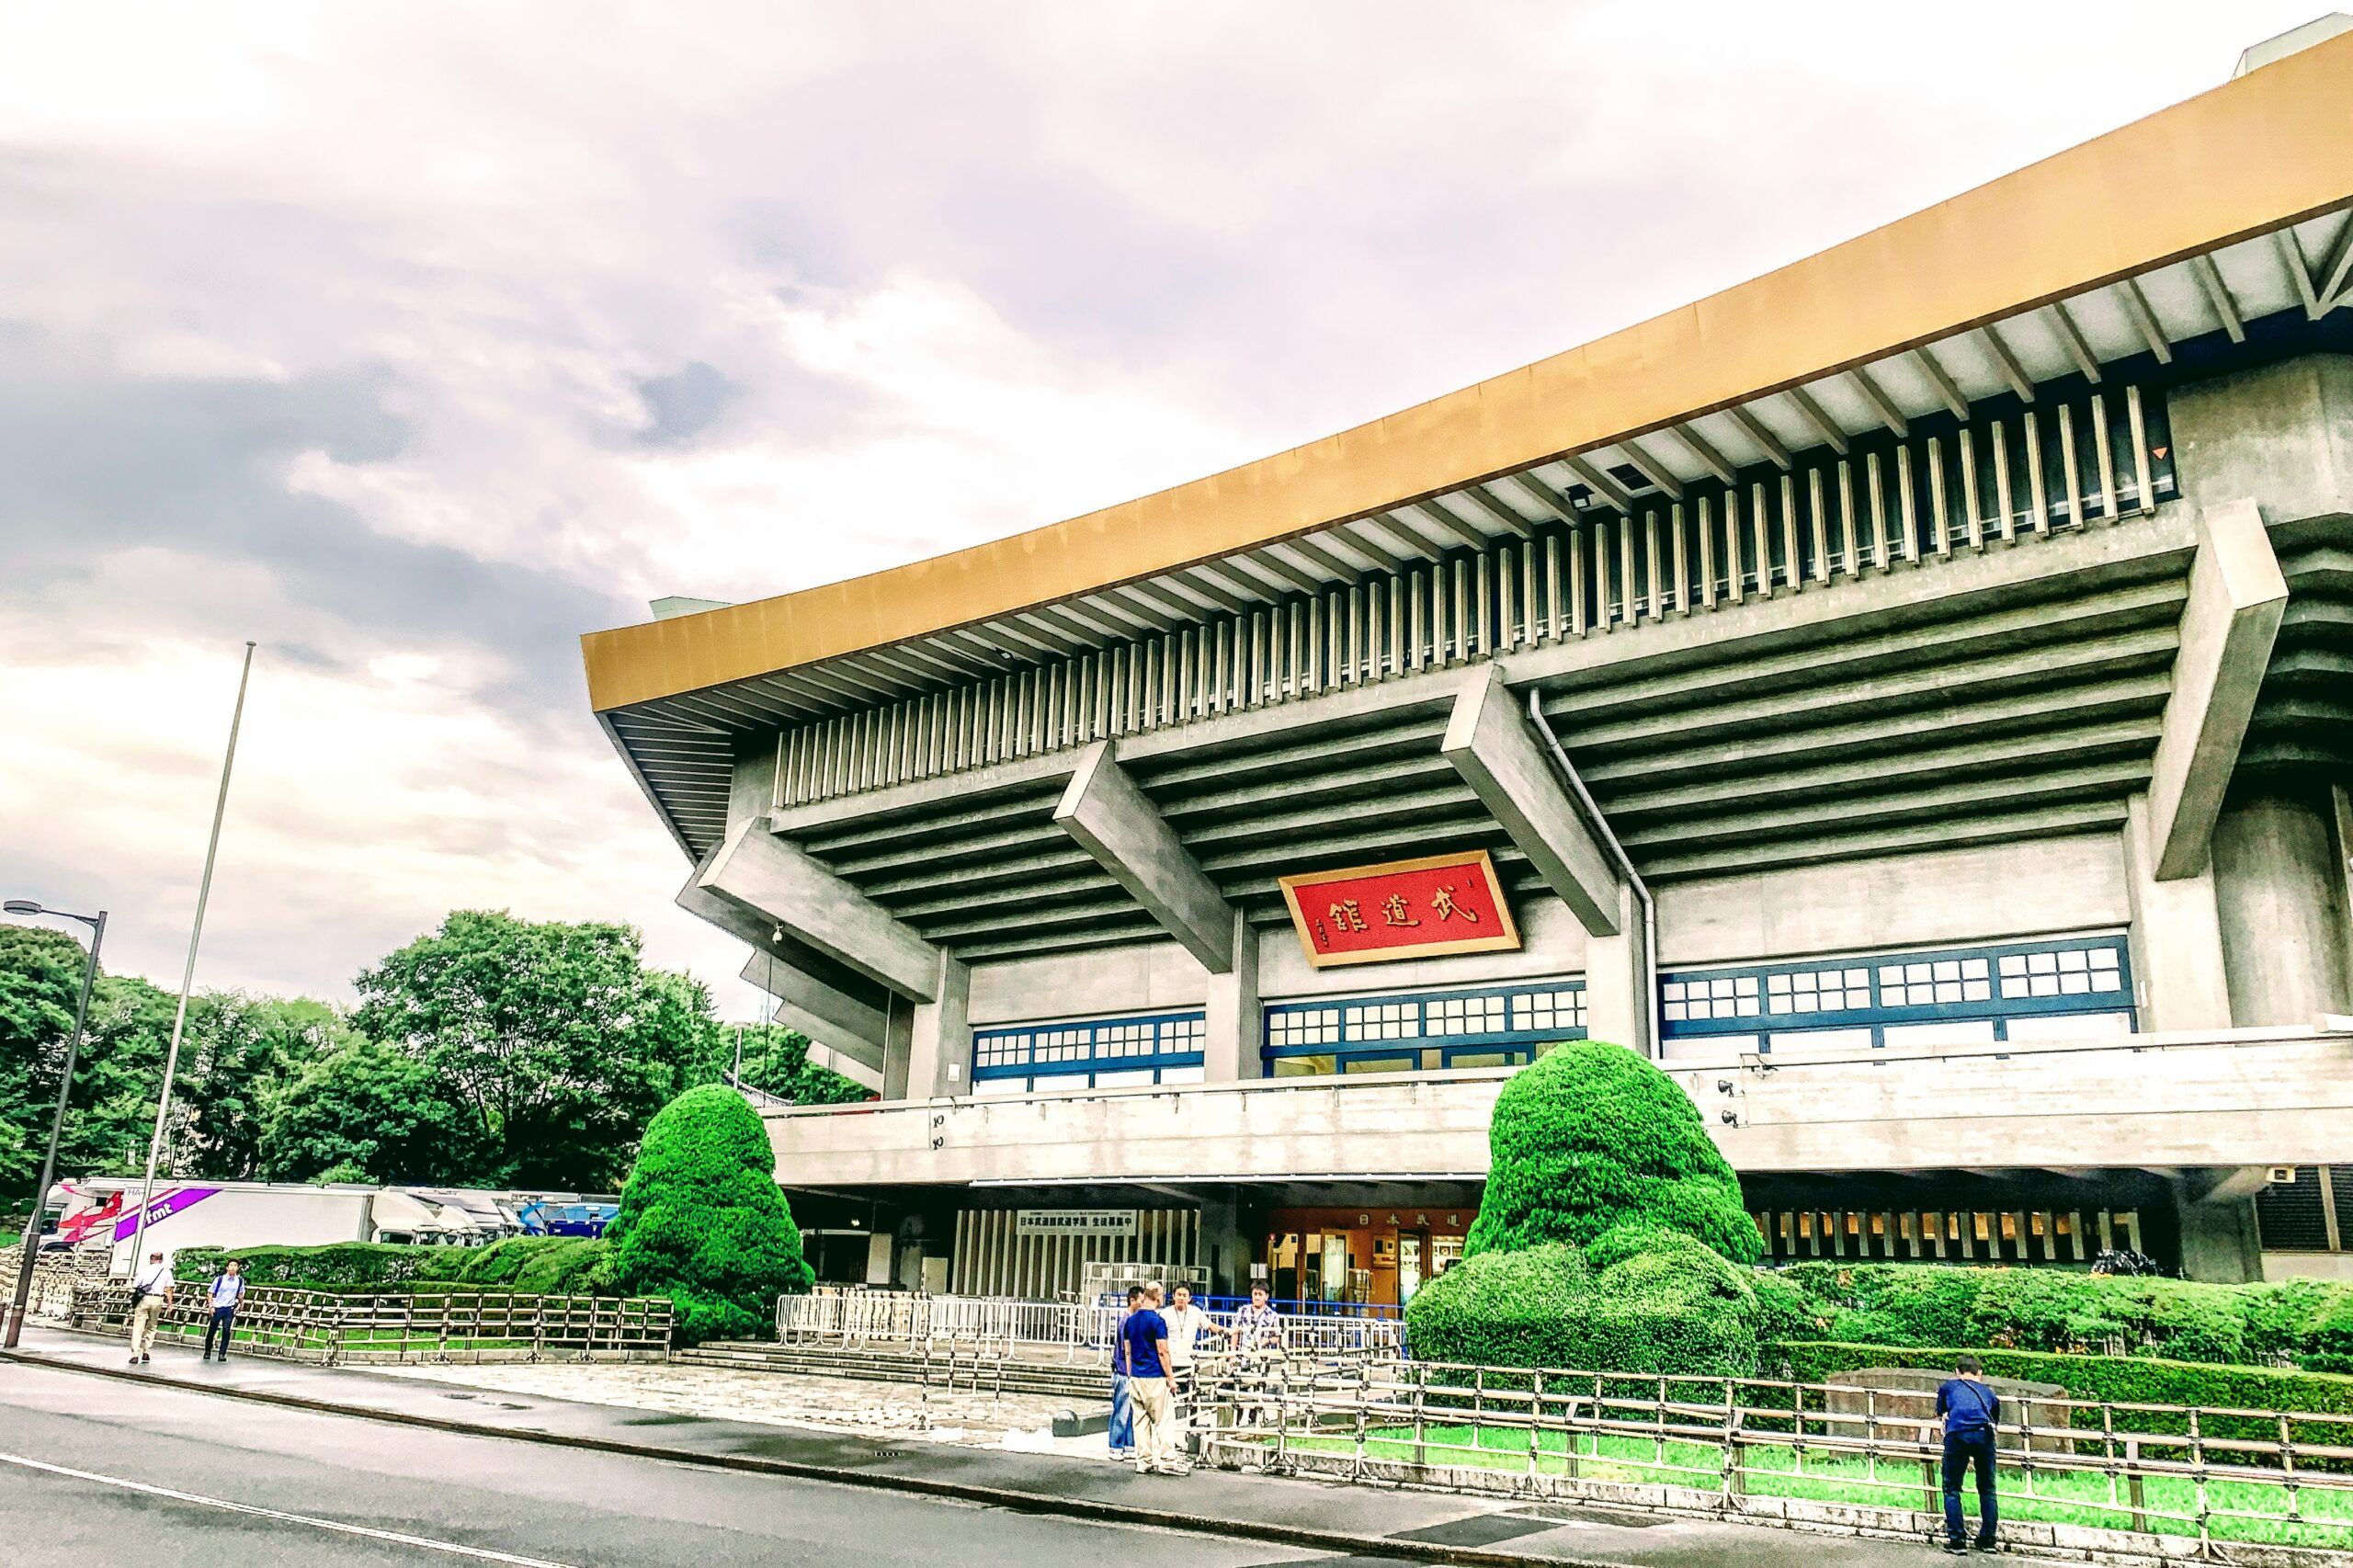 BASIC FACTS ABOUT TOKYO 2020